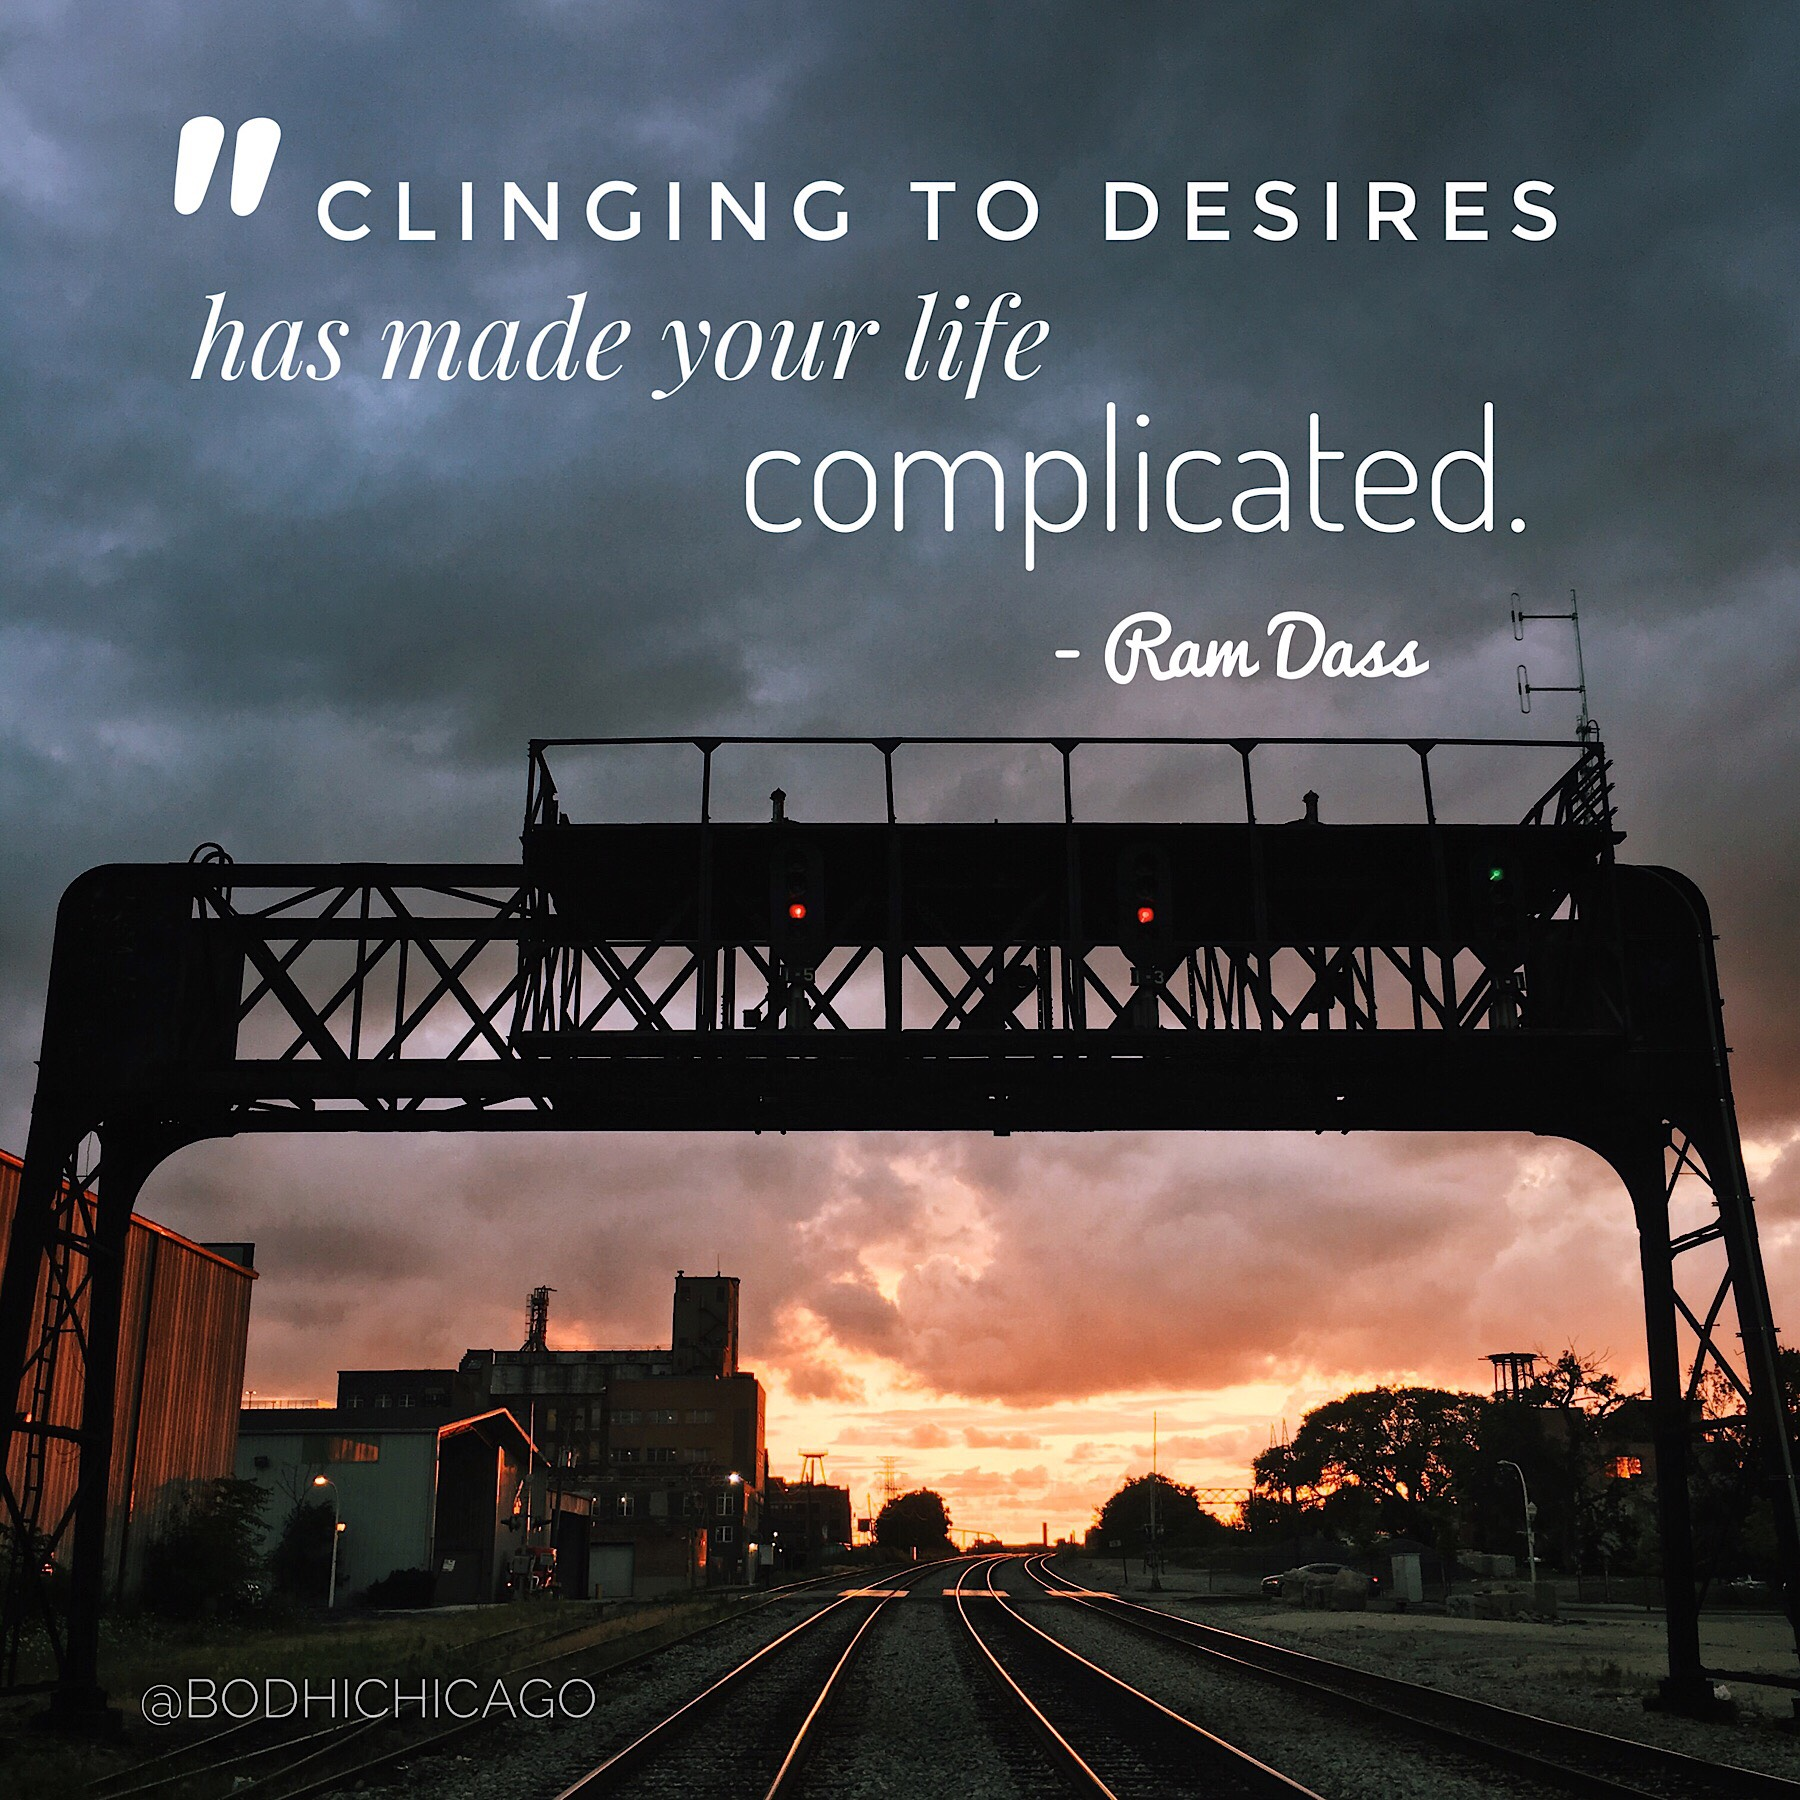 Spiritual Life Quotes Wednesday Wisdom Quote Ram Dass On Clinging To Desires  Bodhi